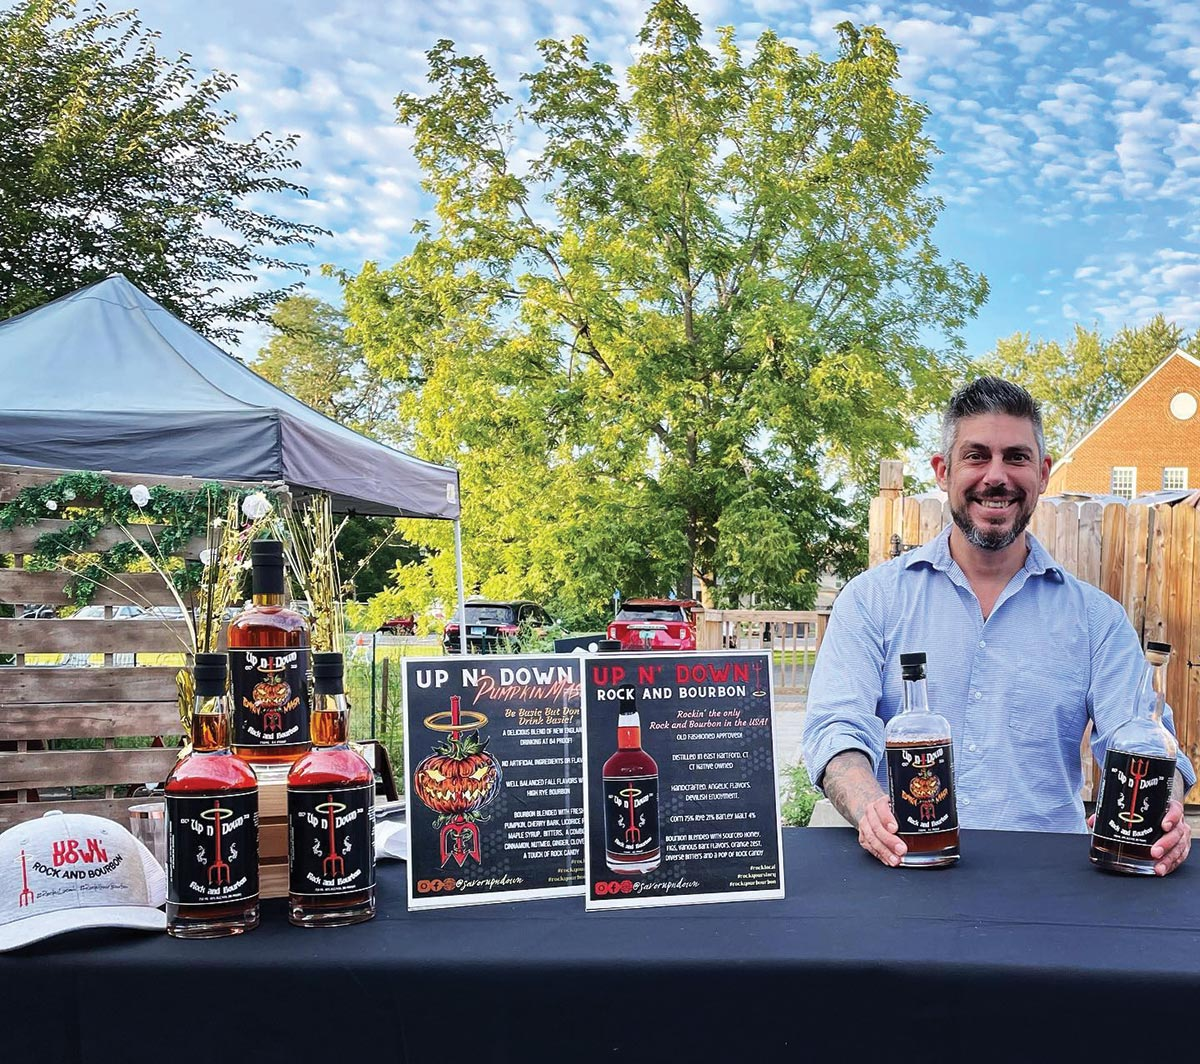 Up N' Down Rock and Bourbon Continues Fall Tastings